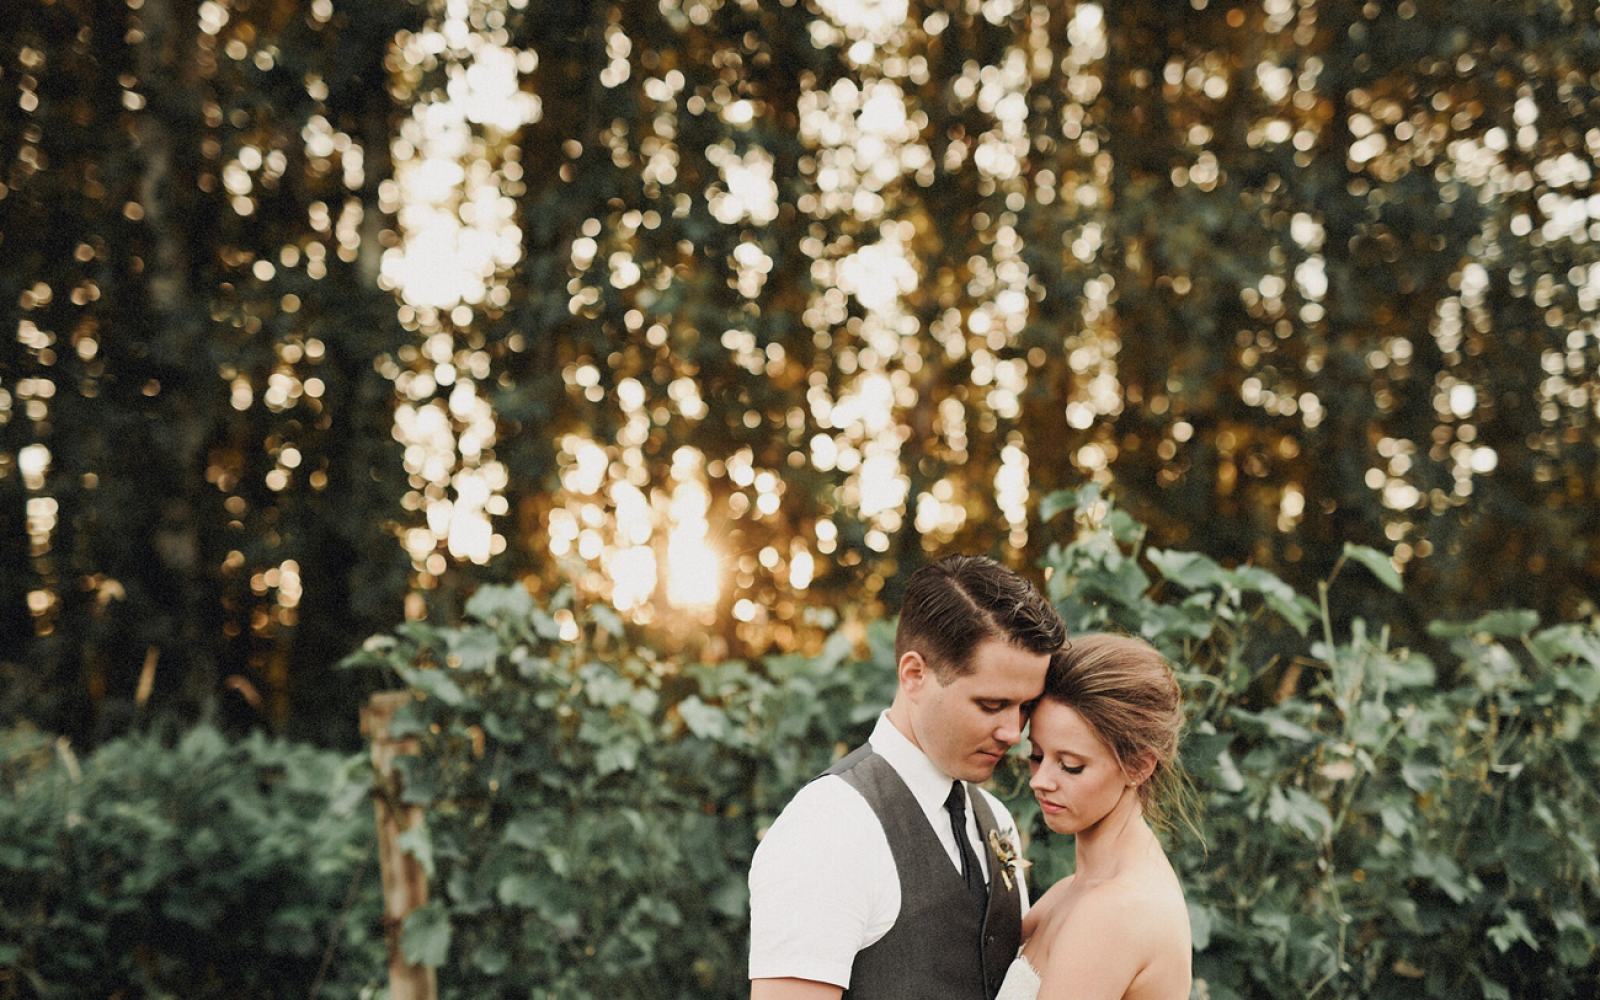 50 Quotes That Show Us The Type Of Love We All Hope For